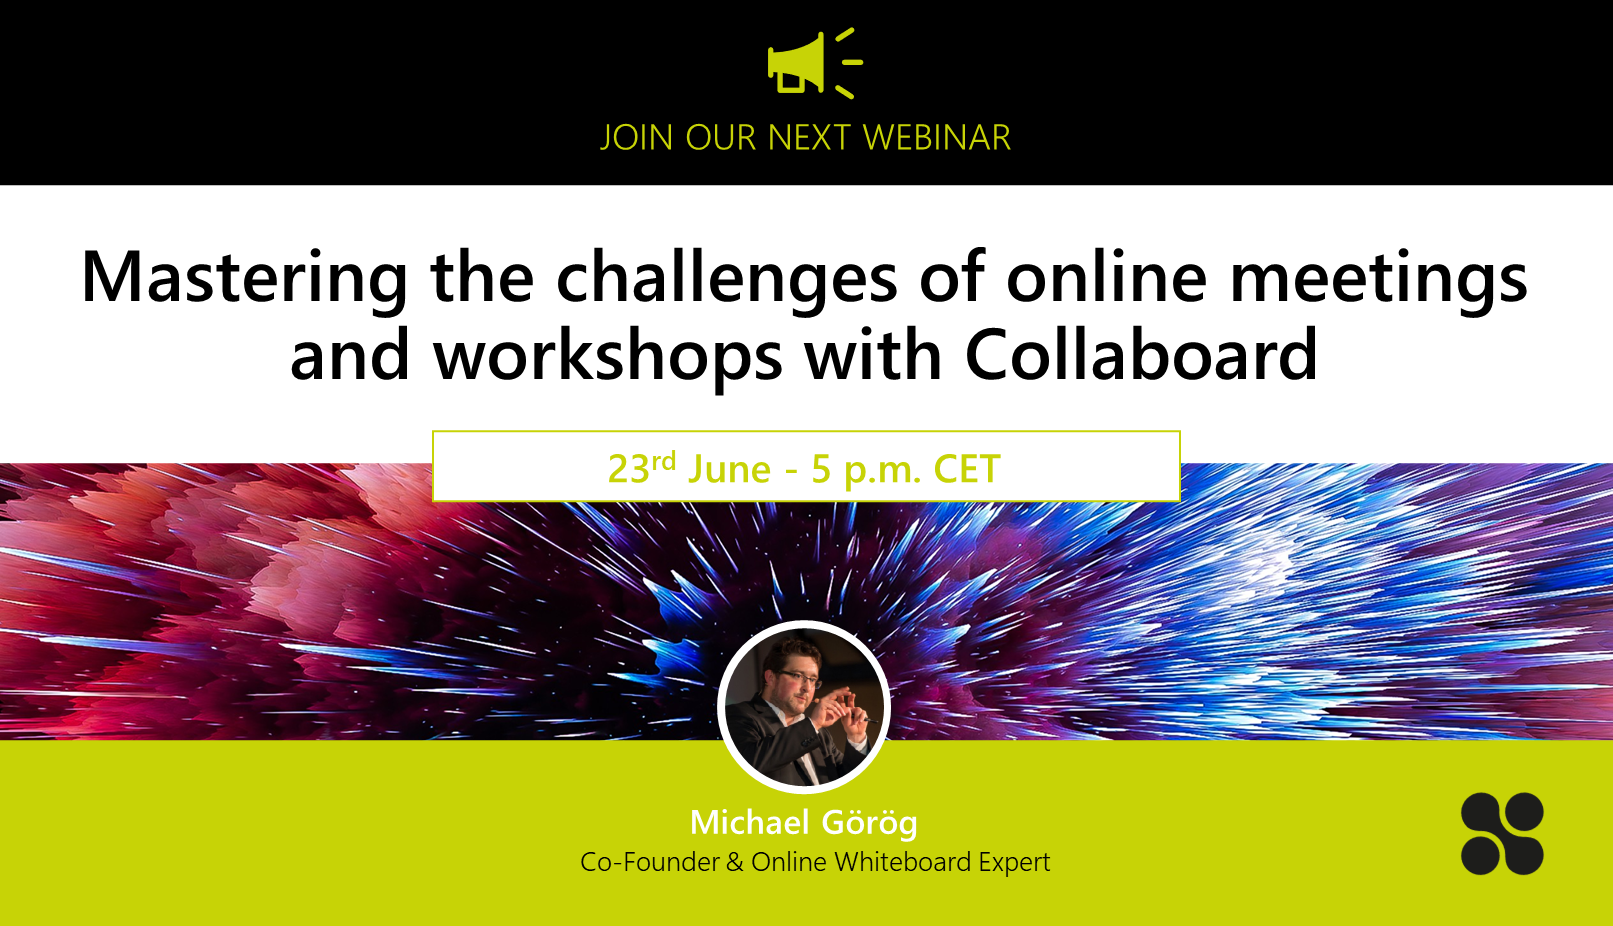 Register now for the free Collaboard webinar